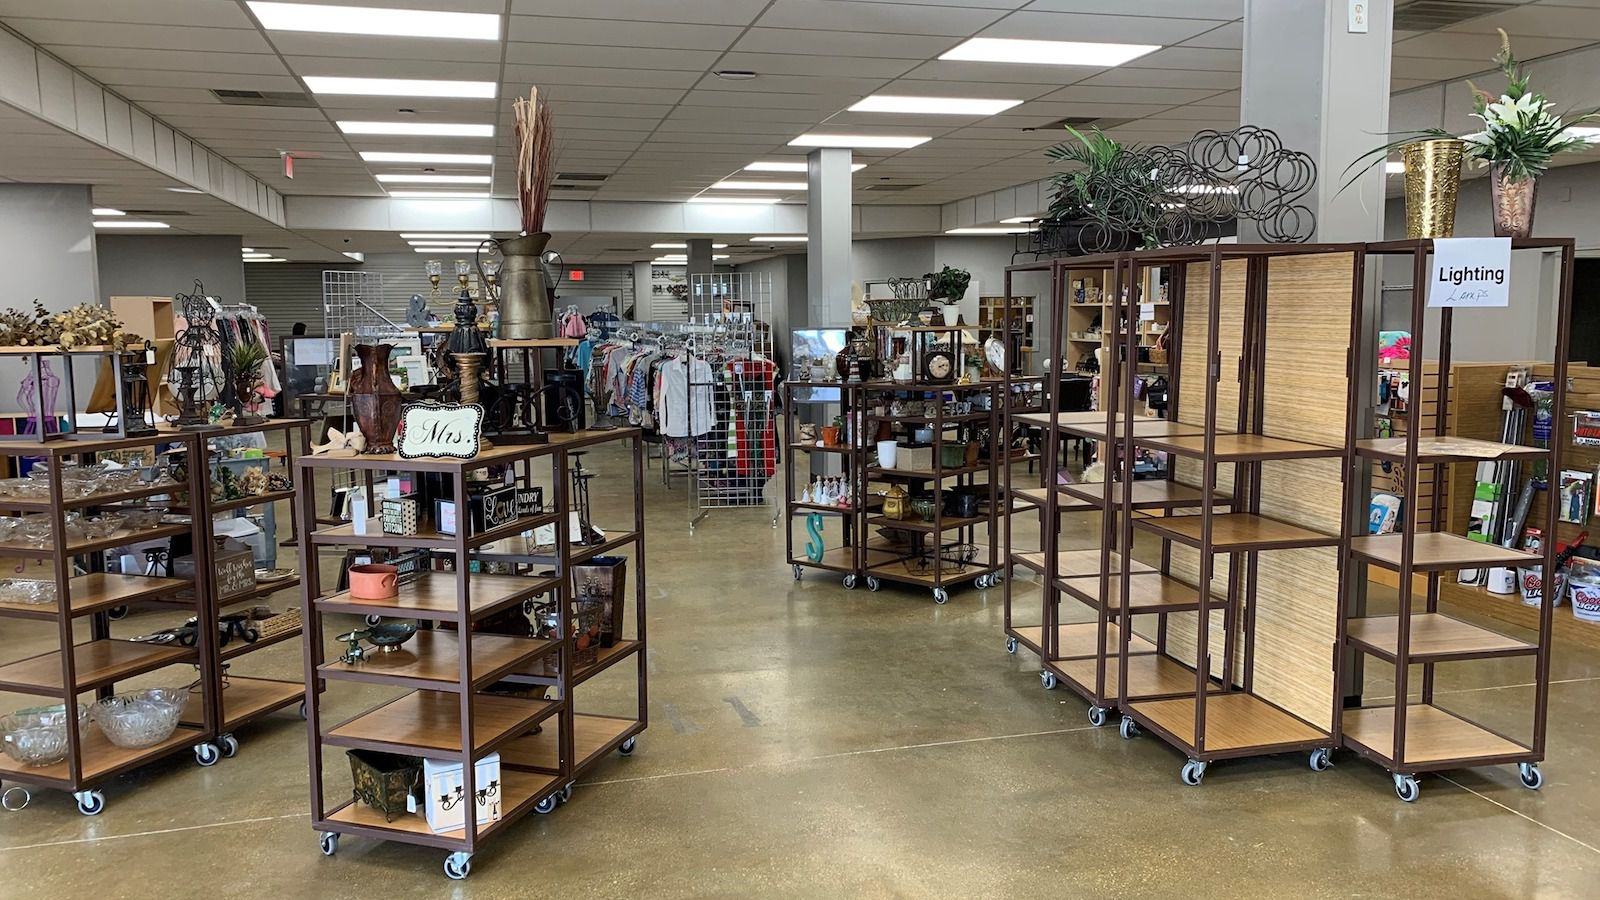 The All Community Outreach resale shop in Allen is nearly ready to reopen with a fresh new look.